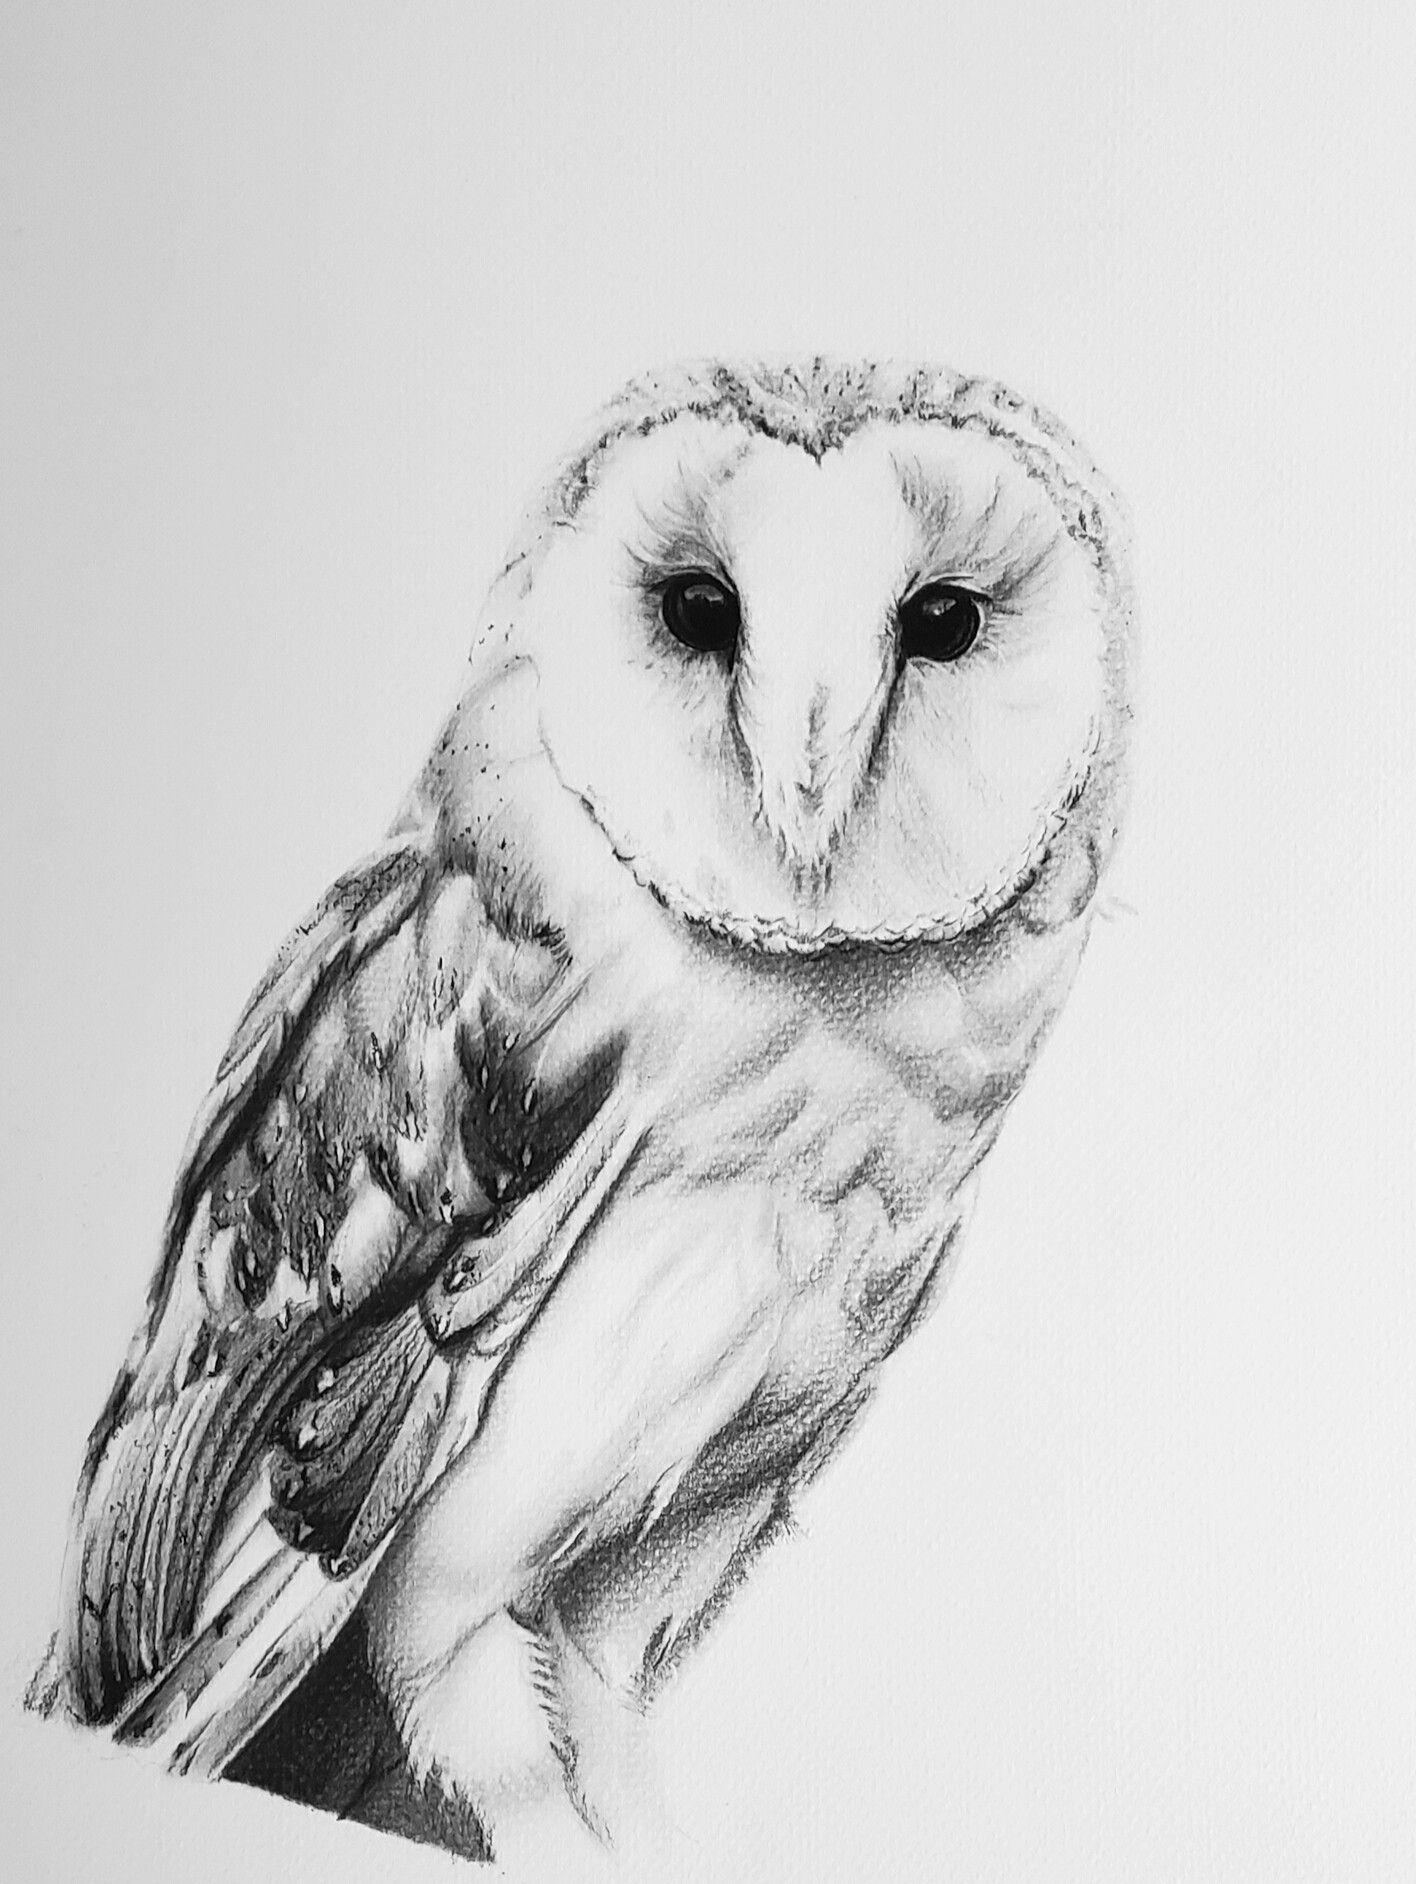 This is an 11x14in. barn owl drawing in charcoal on ...